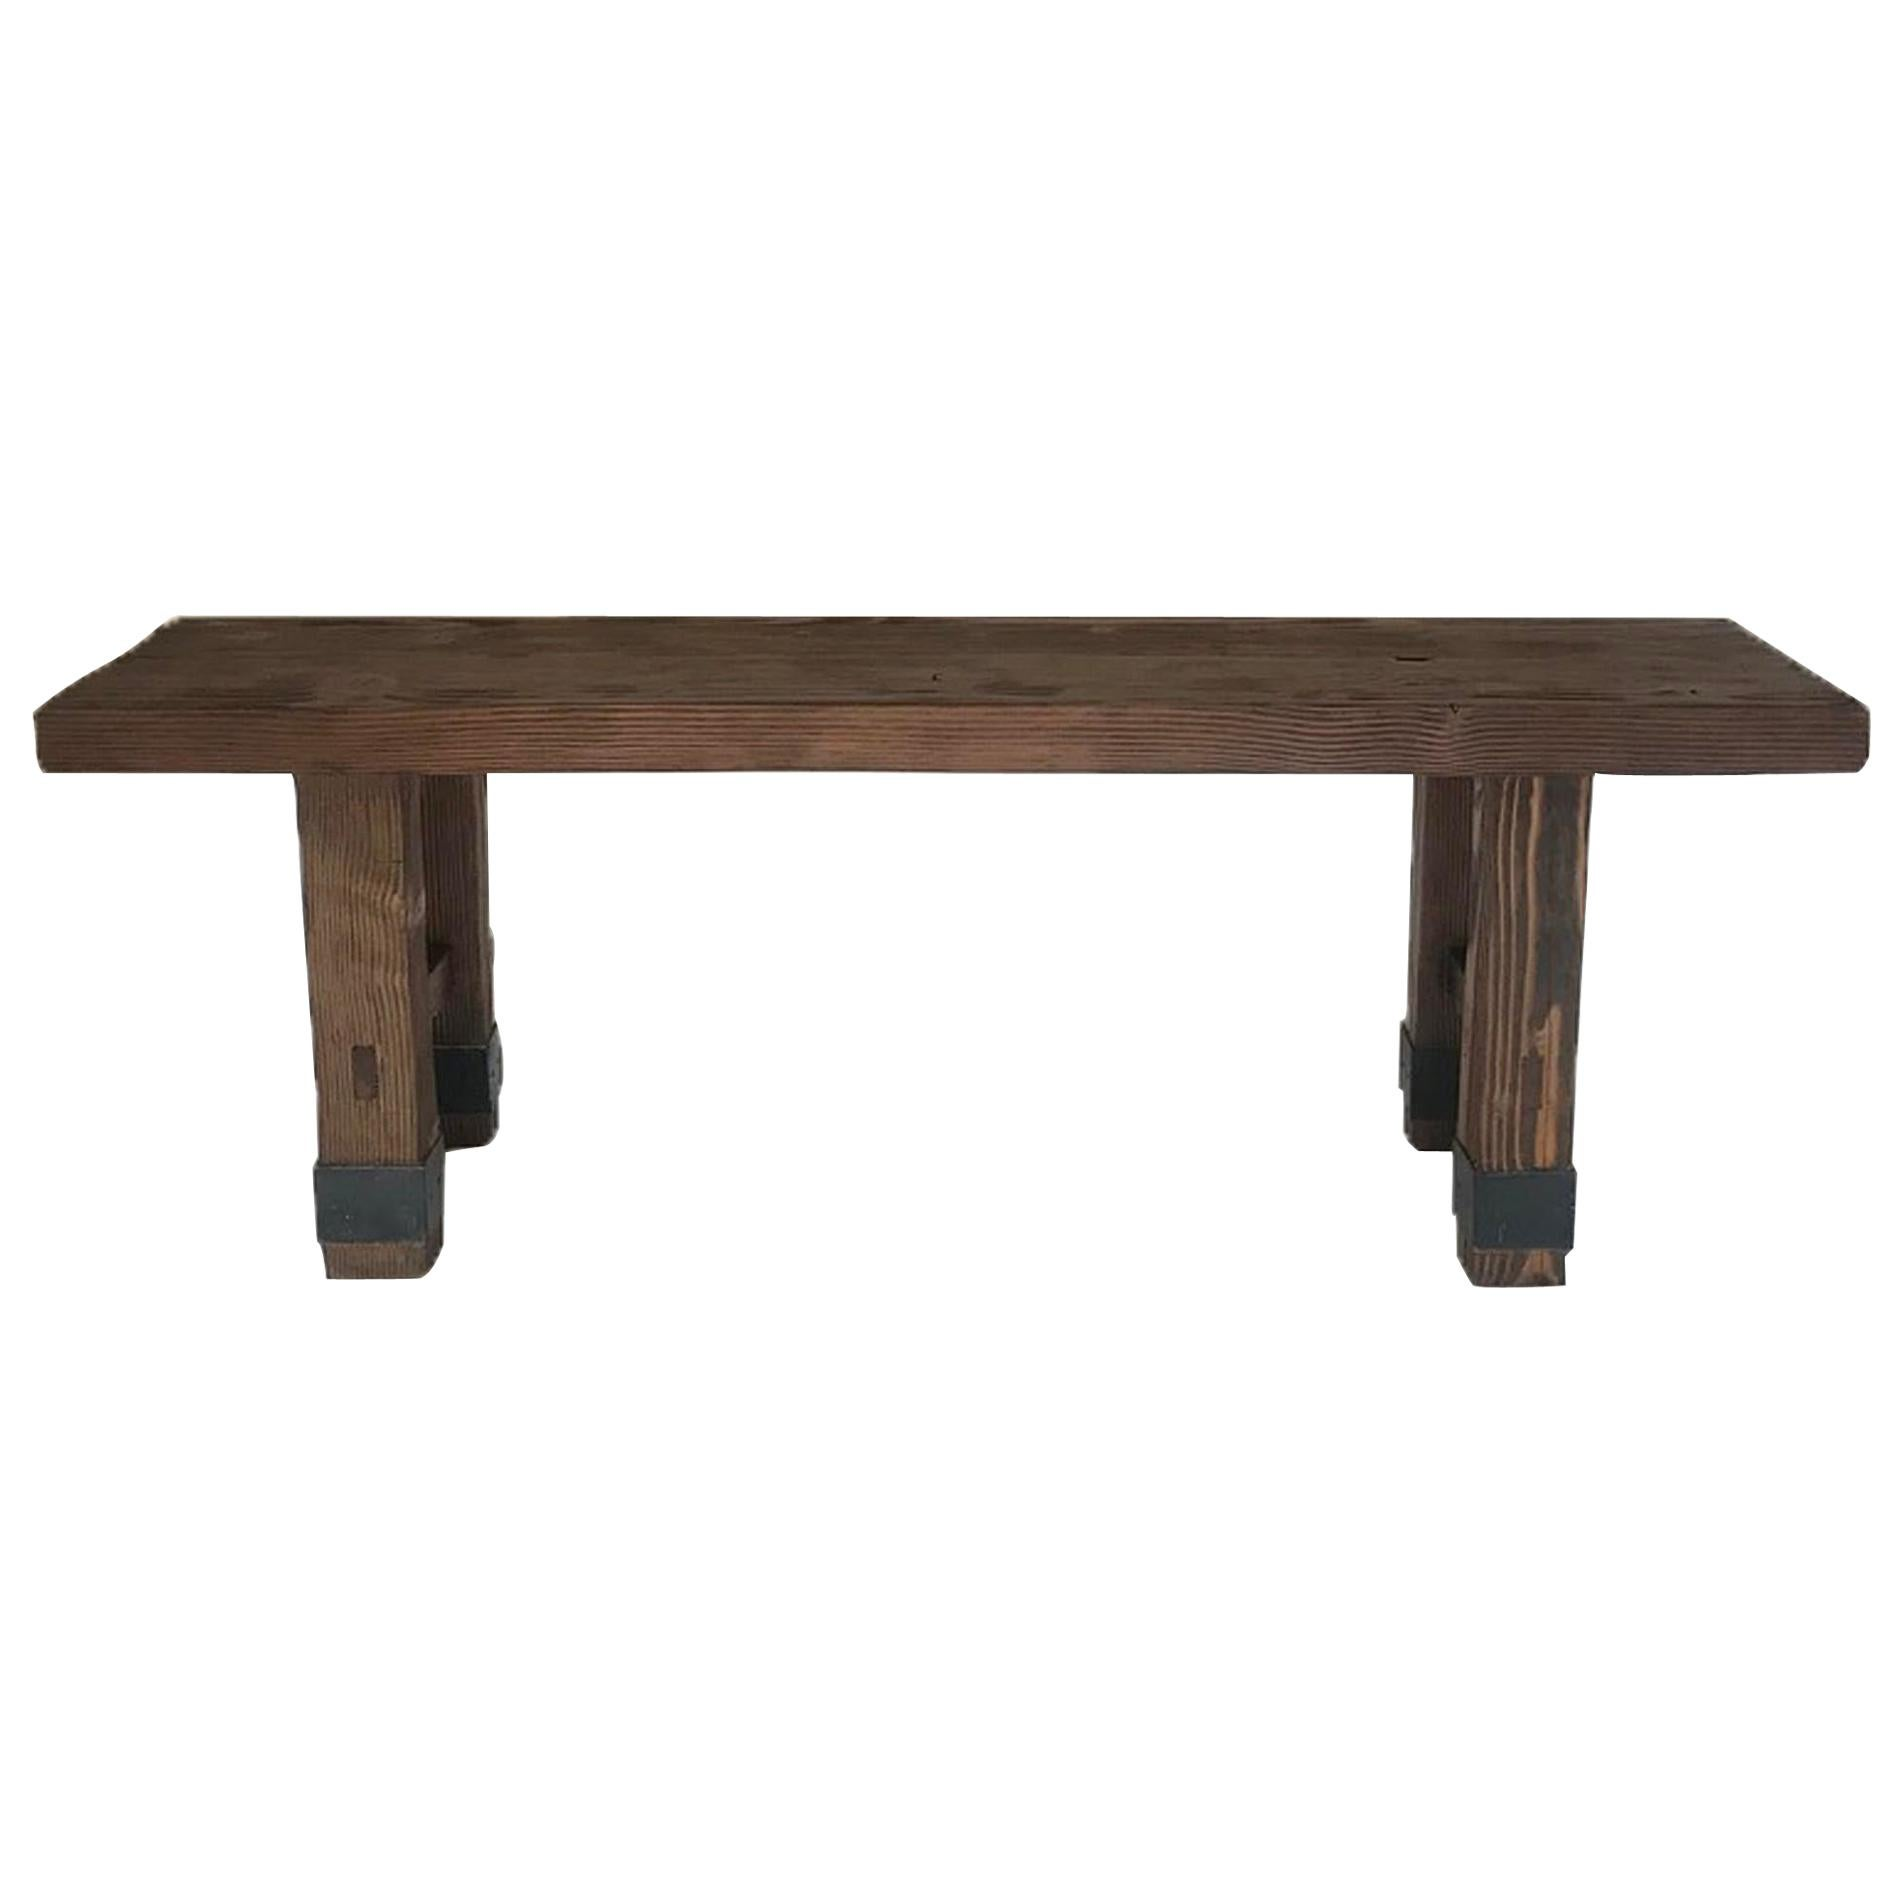 Reclaimed Wood Console with Iron Banding